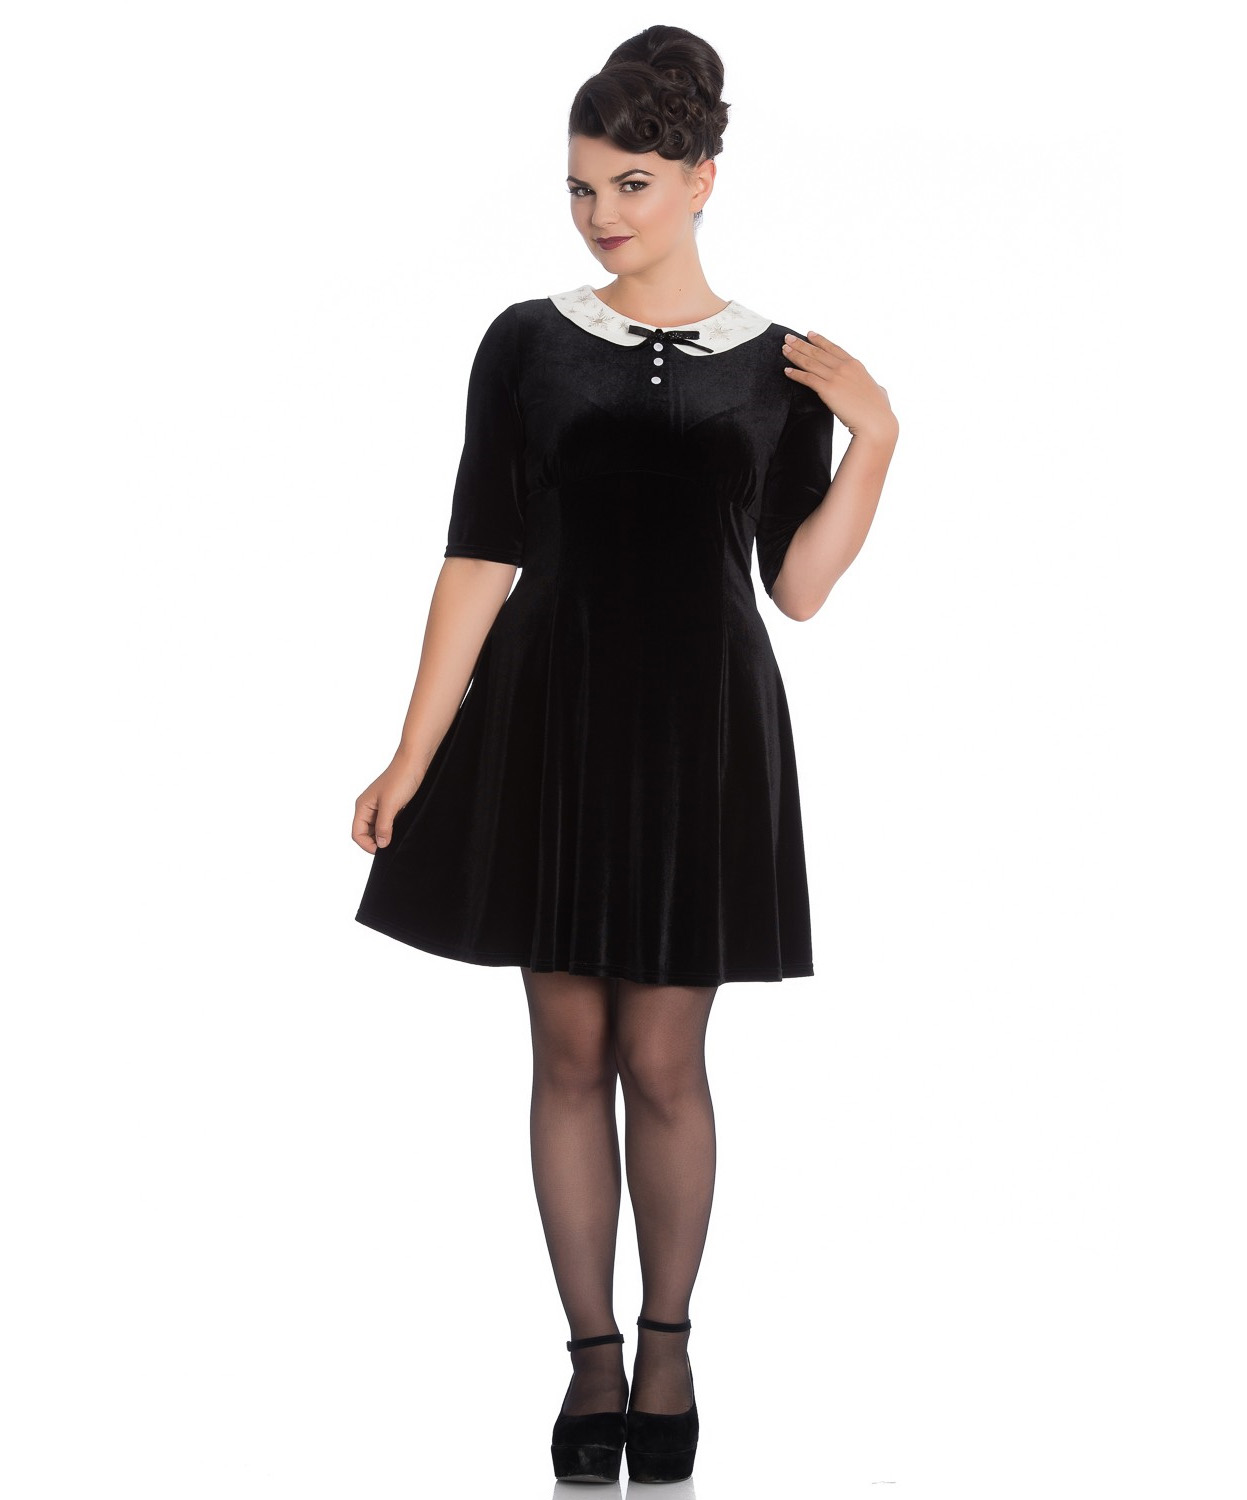 Hell-Bunny-Mini-Skater-Dress-Festive-Christmas-SNOWY-Black-Snowflakes-All-Sizes thumbnail 15